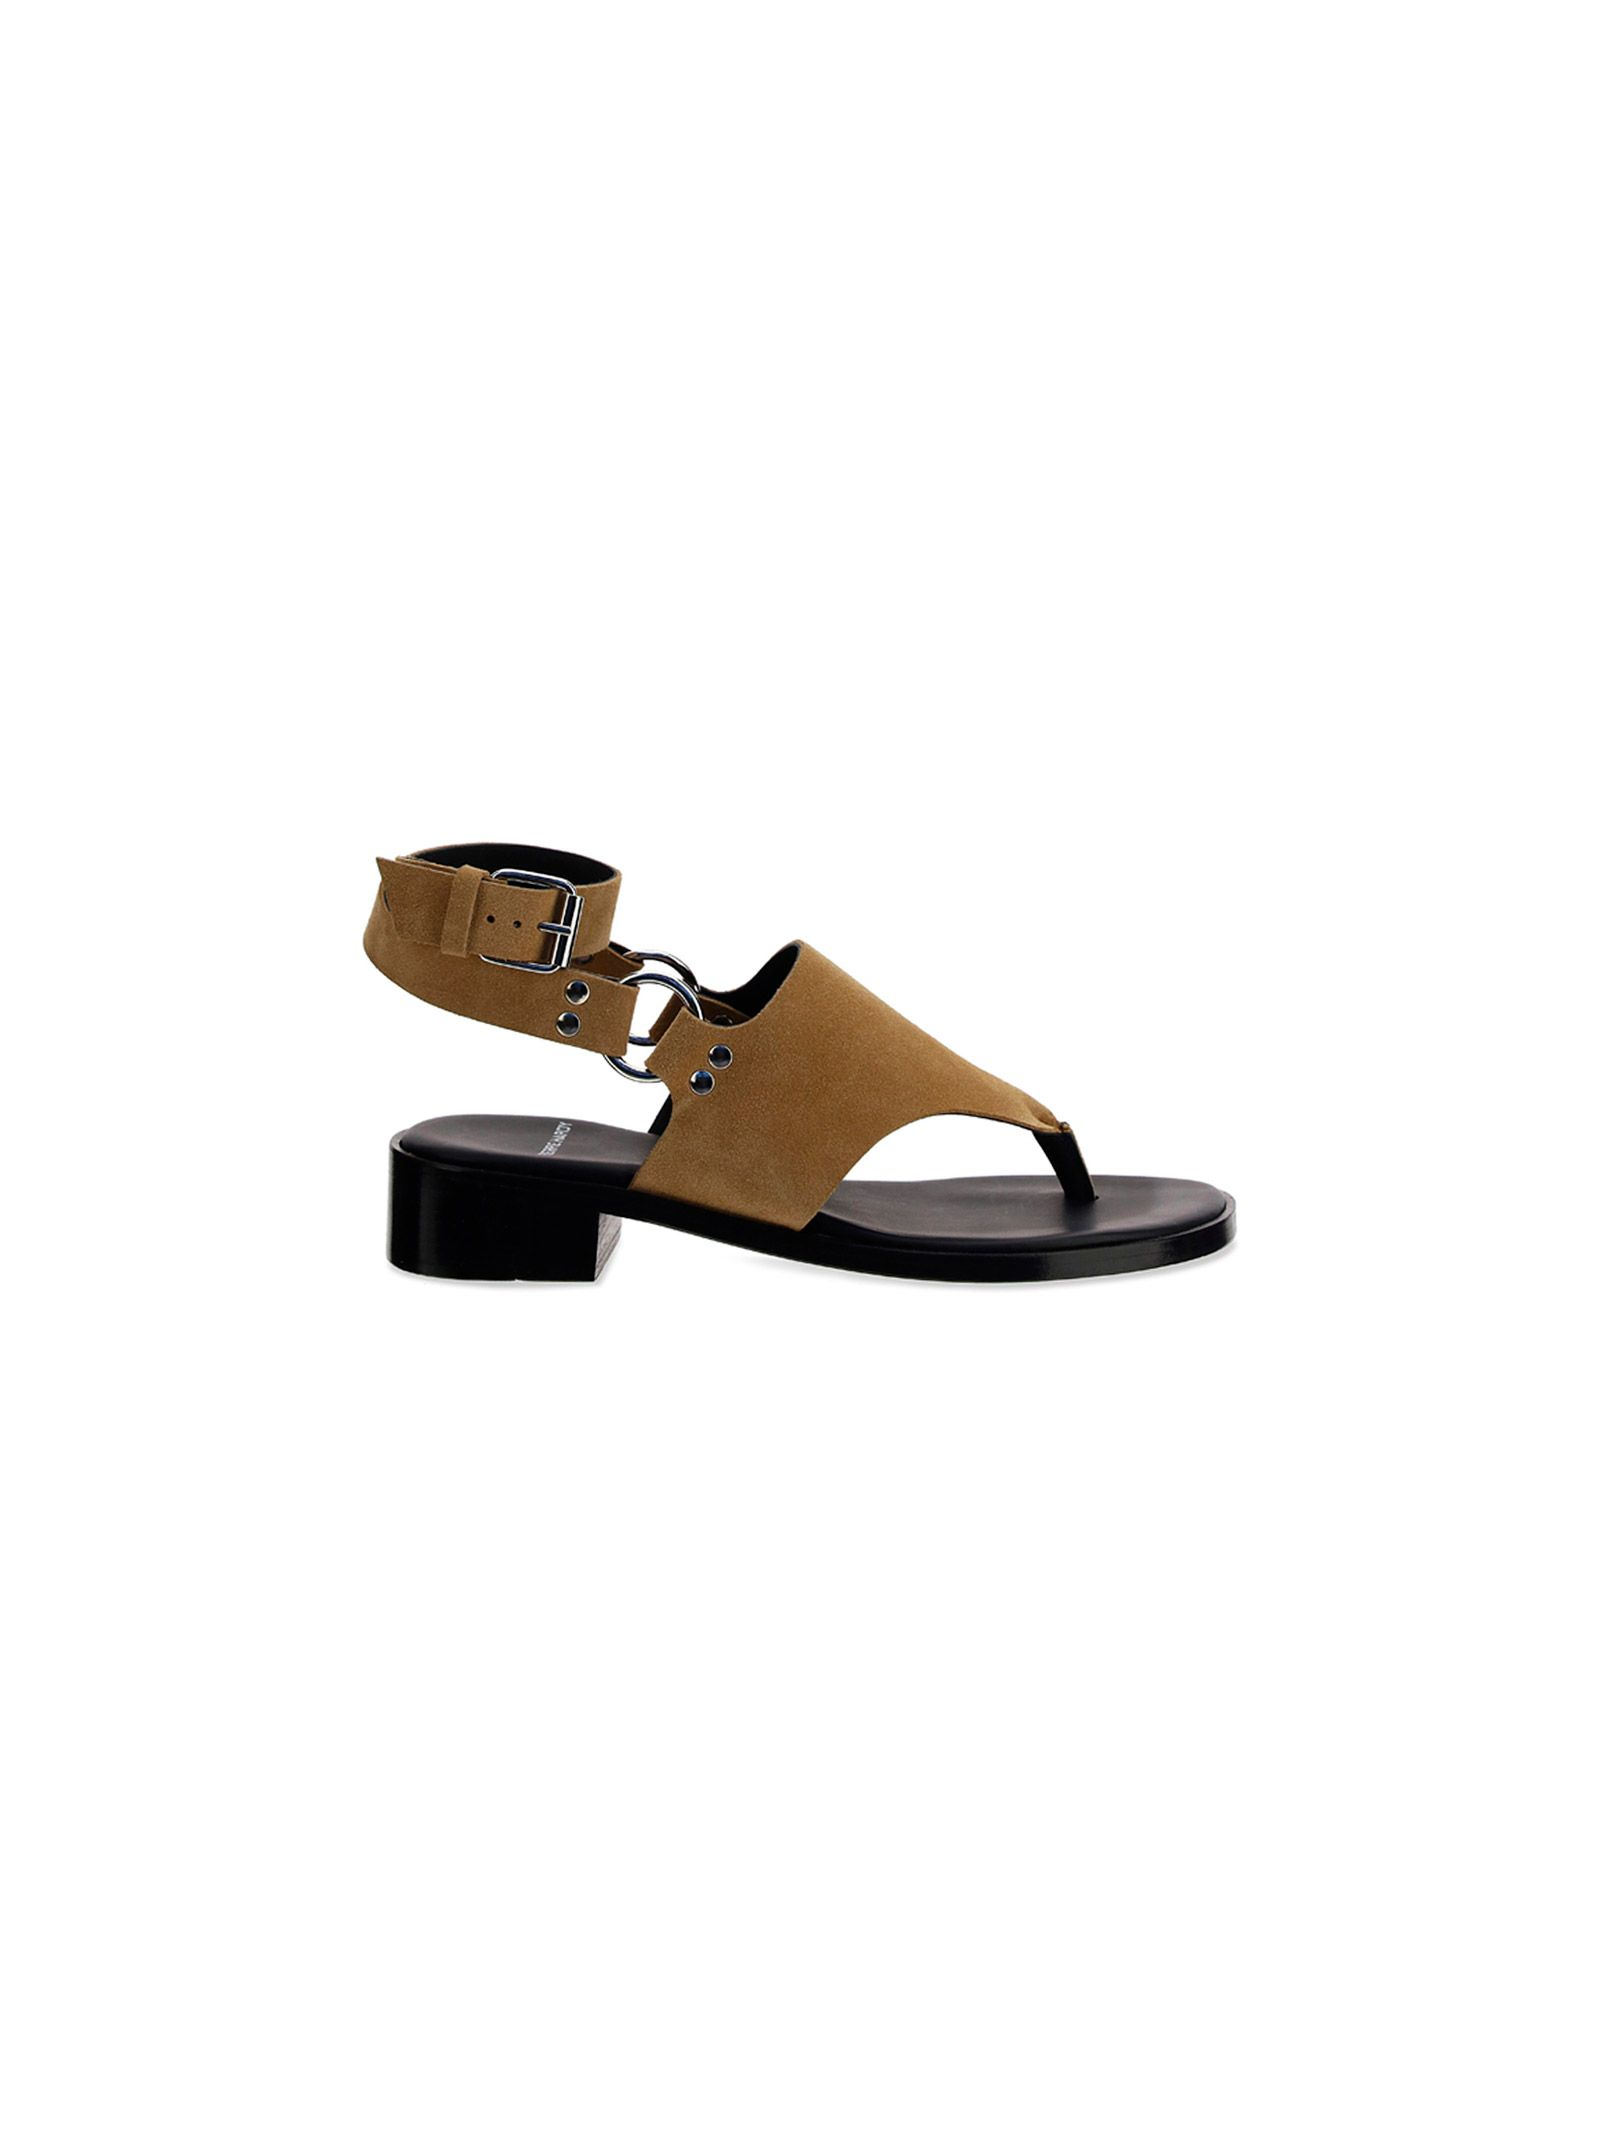 Pierre Hardy PIERRE HARDY WOMEN'S VN02CAMEL BROWN OTHER MATERIALS SANDALS